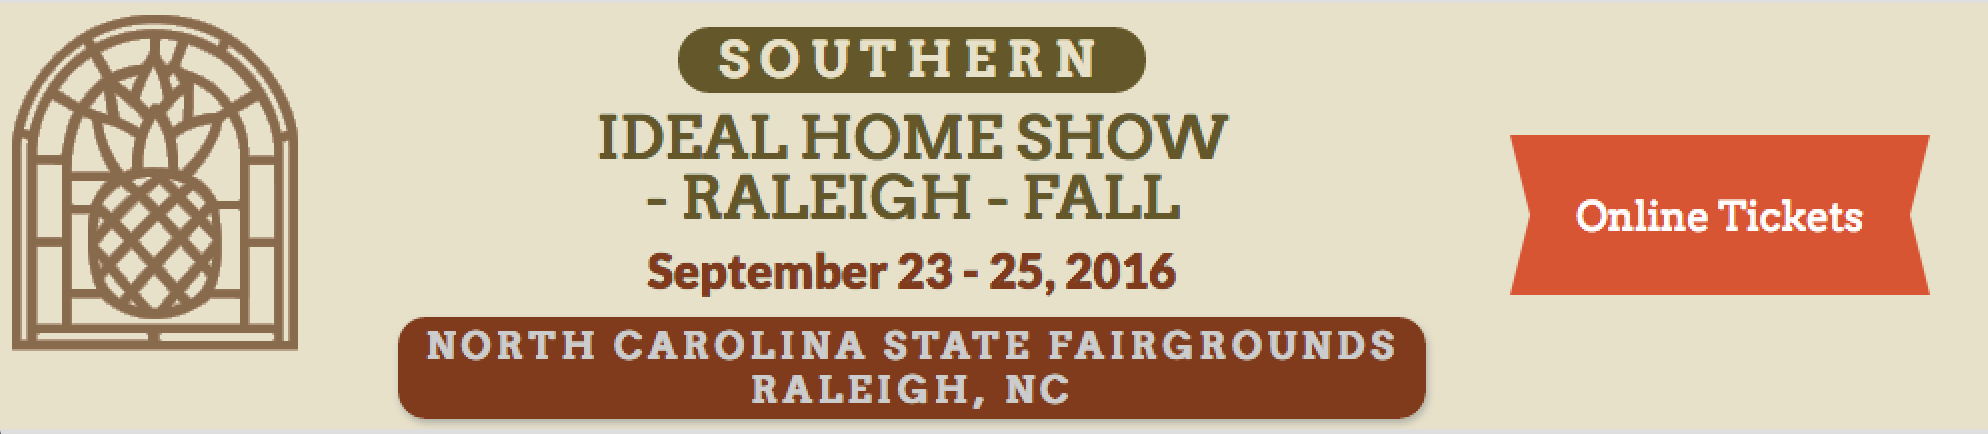 Ideal-Home-Show-Raleigh-Fall